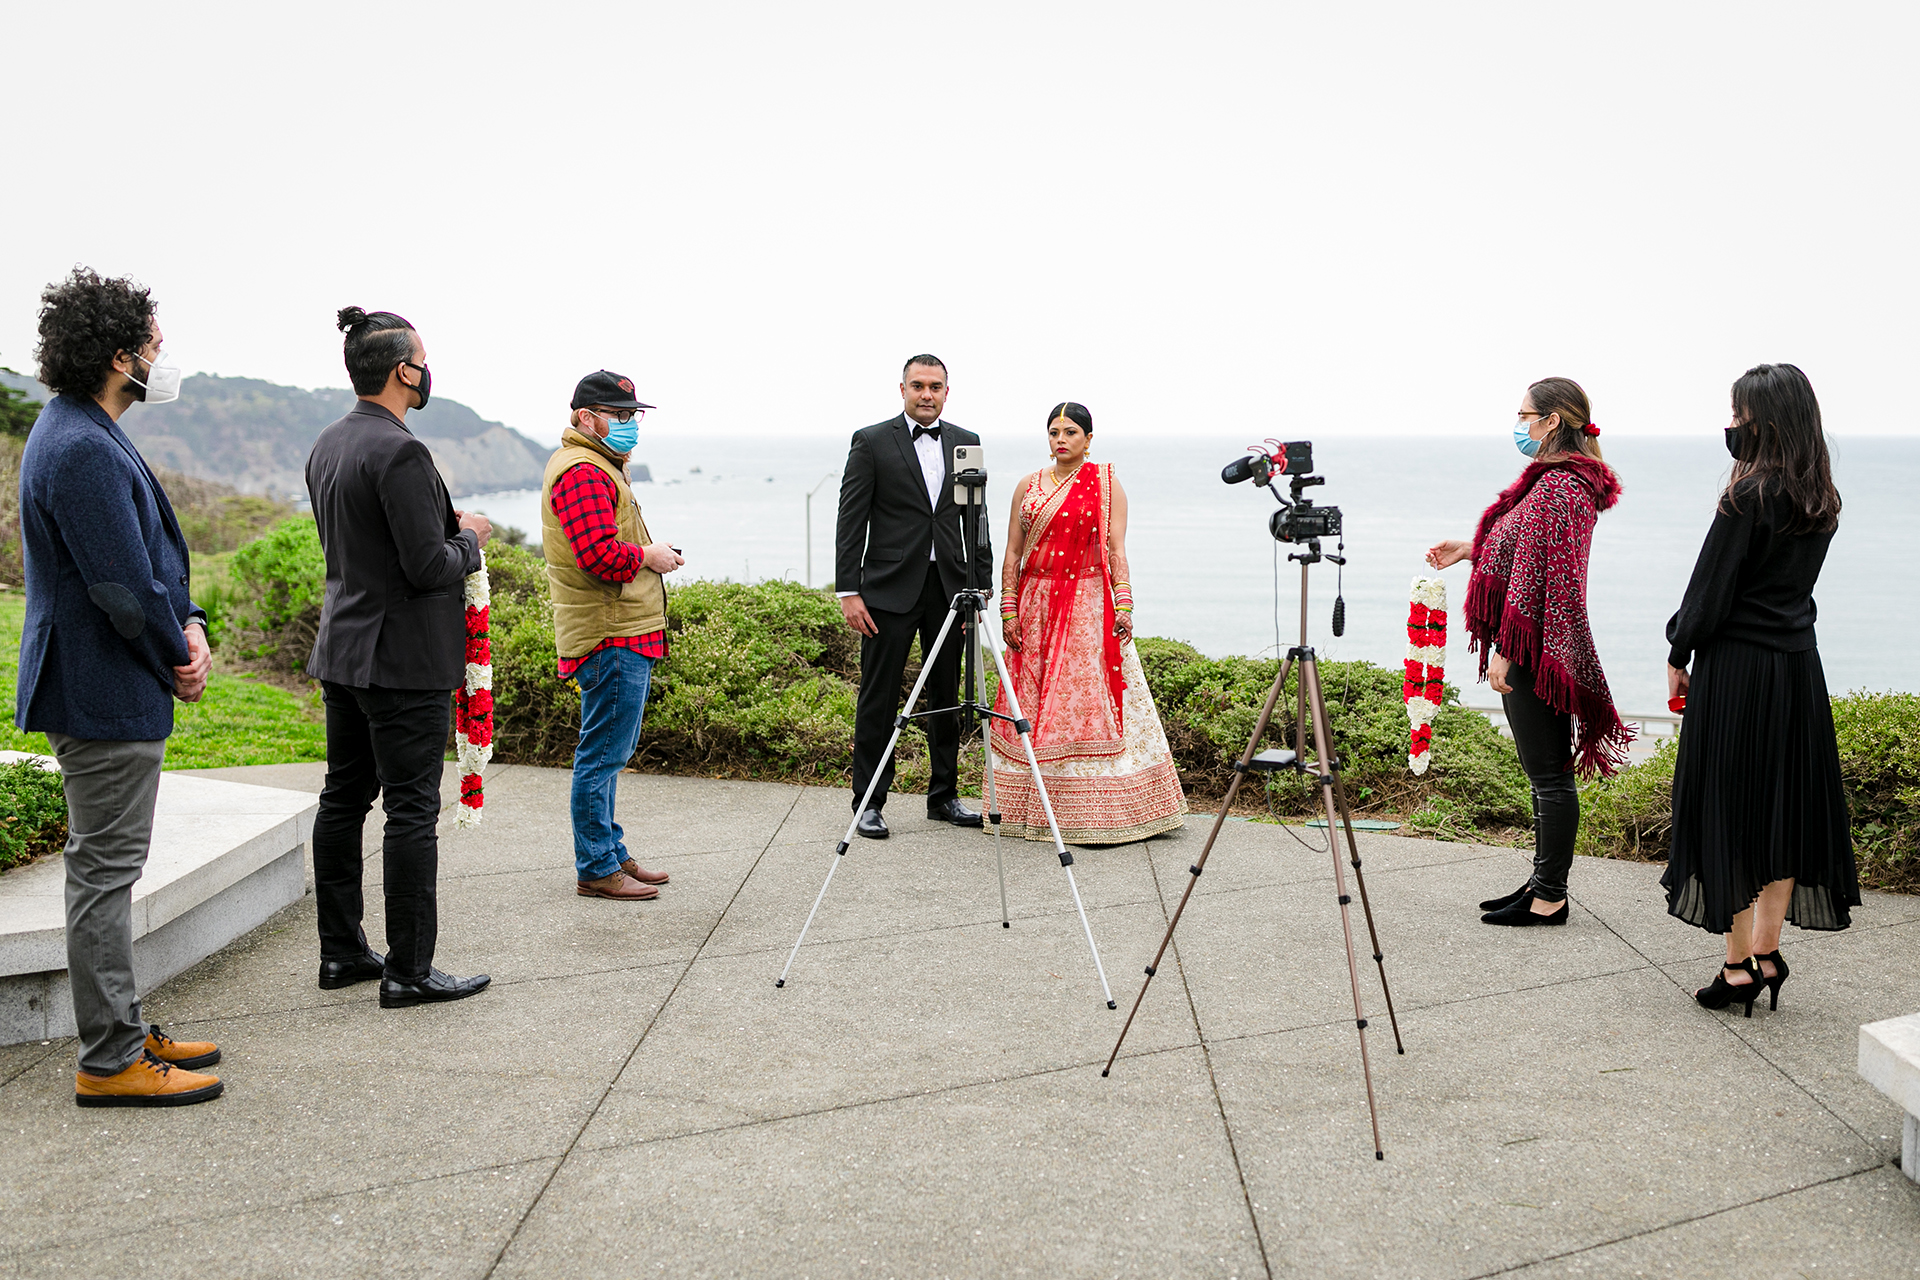 Wedding Photographers of San Francisco City, CA | The couple could not have all of their friends and family in attendance